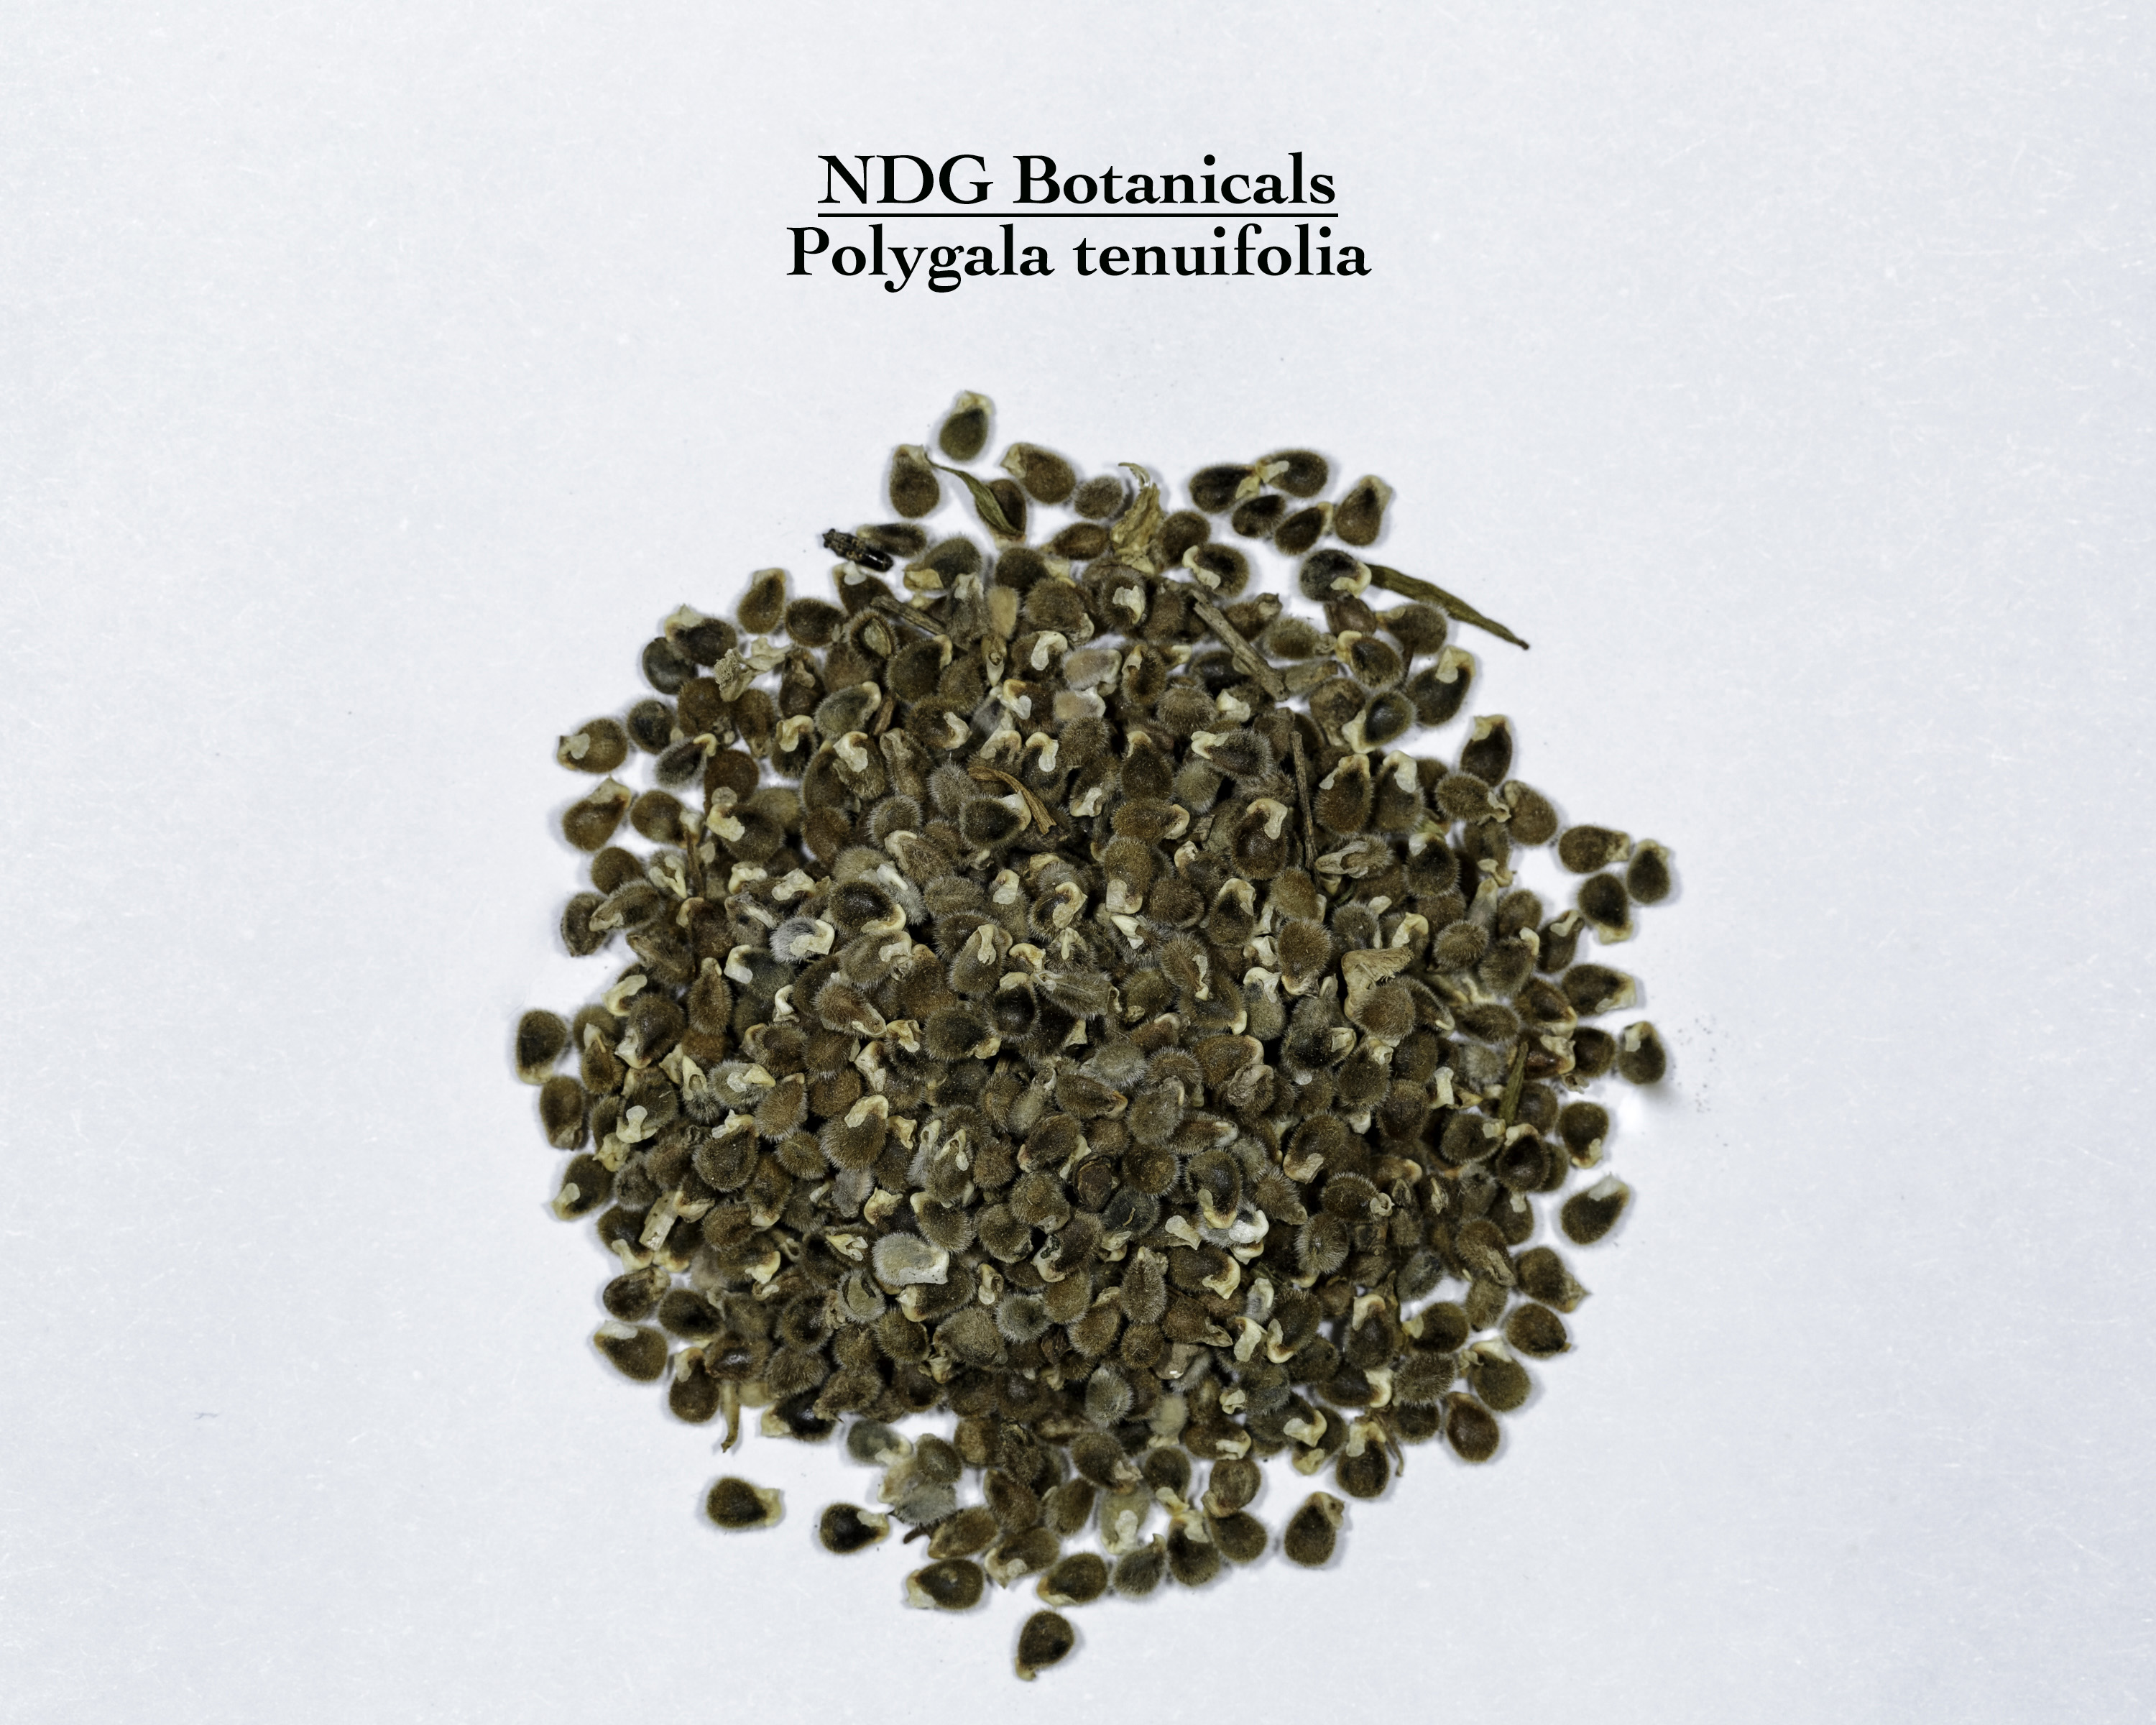 A top down view of a small pile of Polygala tenuifolia (Chinese Senegal) seeds.